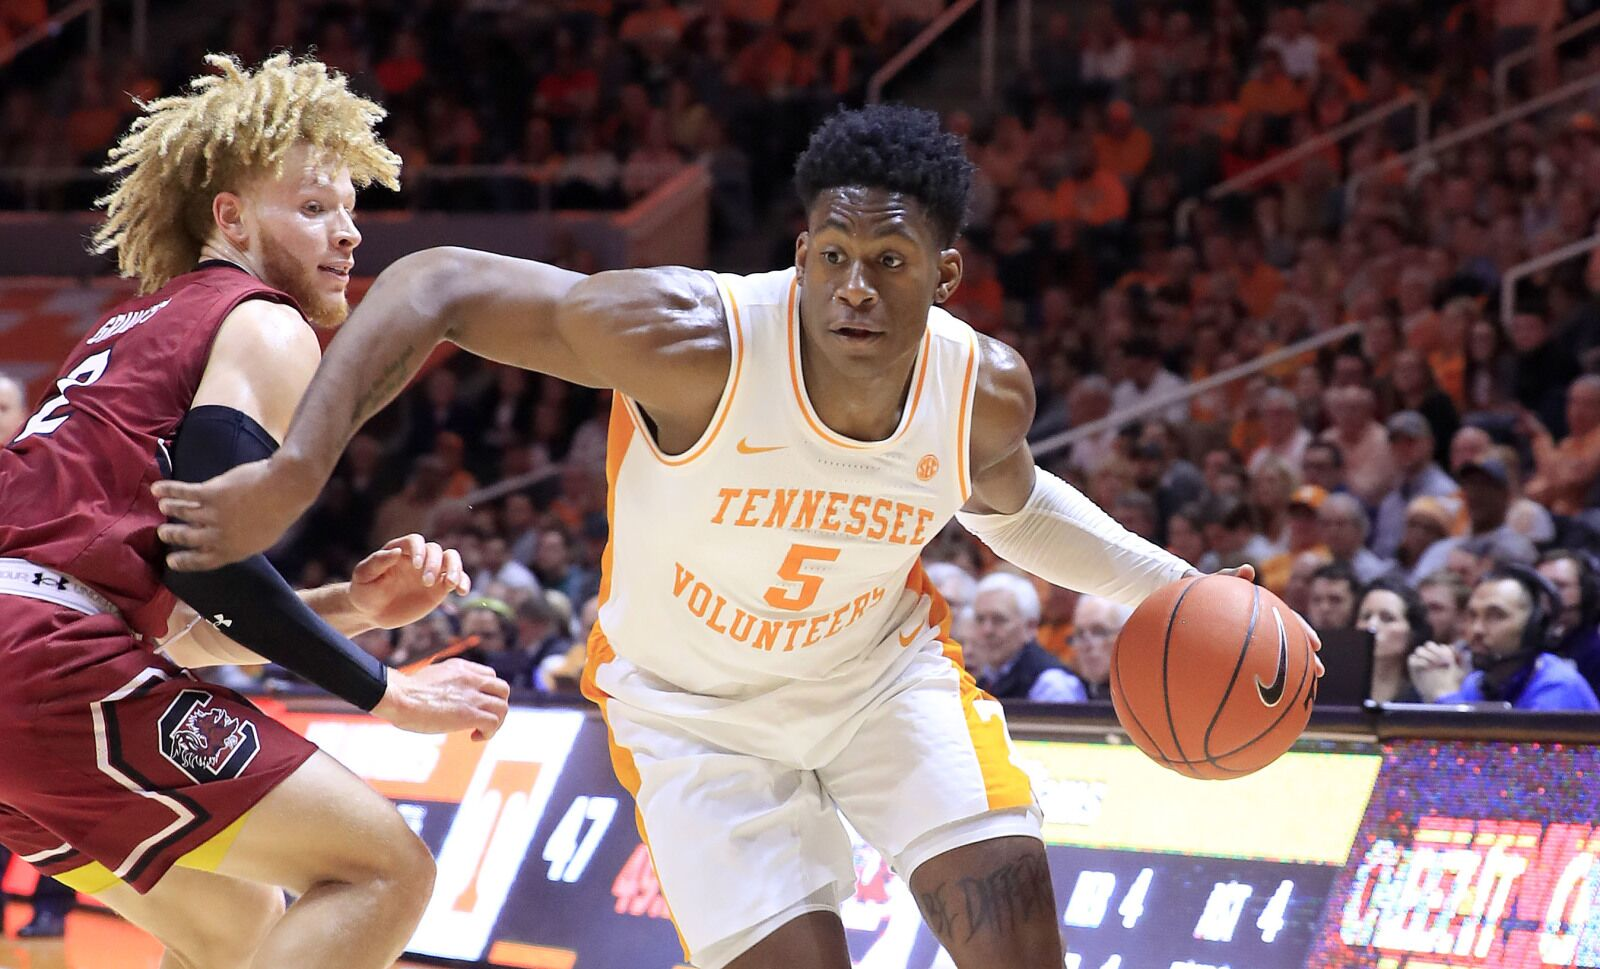 Tennessee vs. Kentucky: 2018-19 college basketball game preview, TV schedule